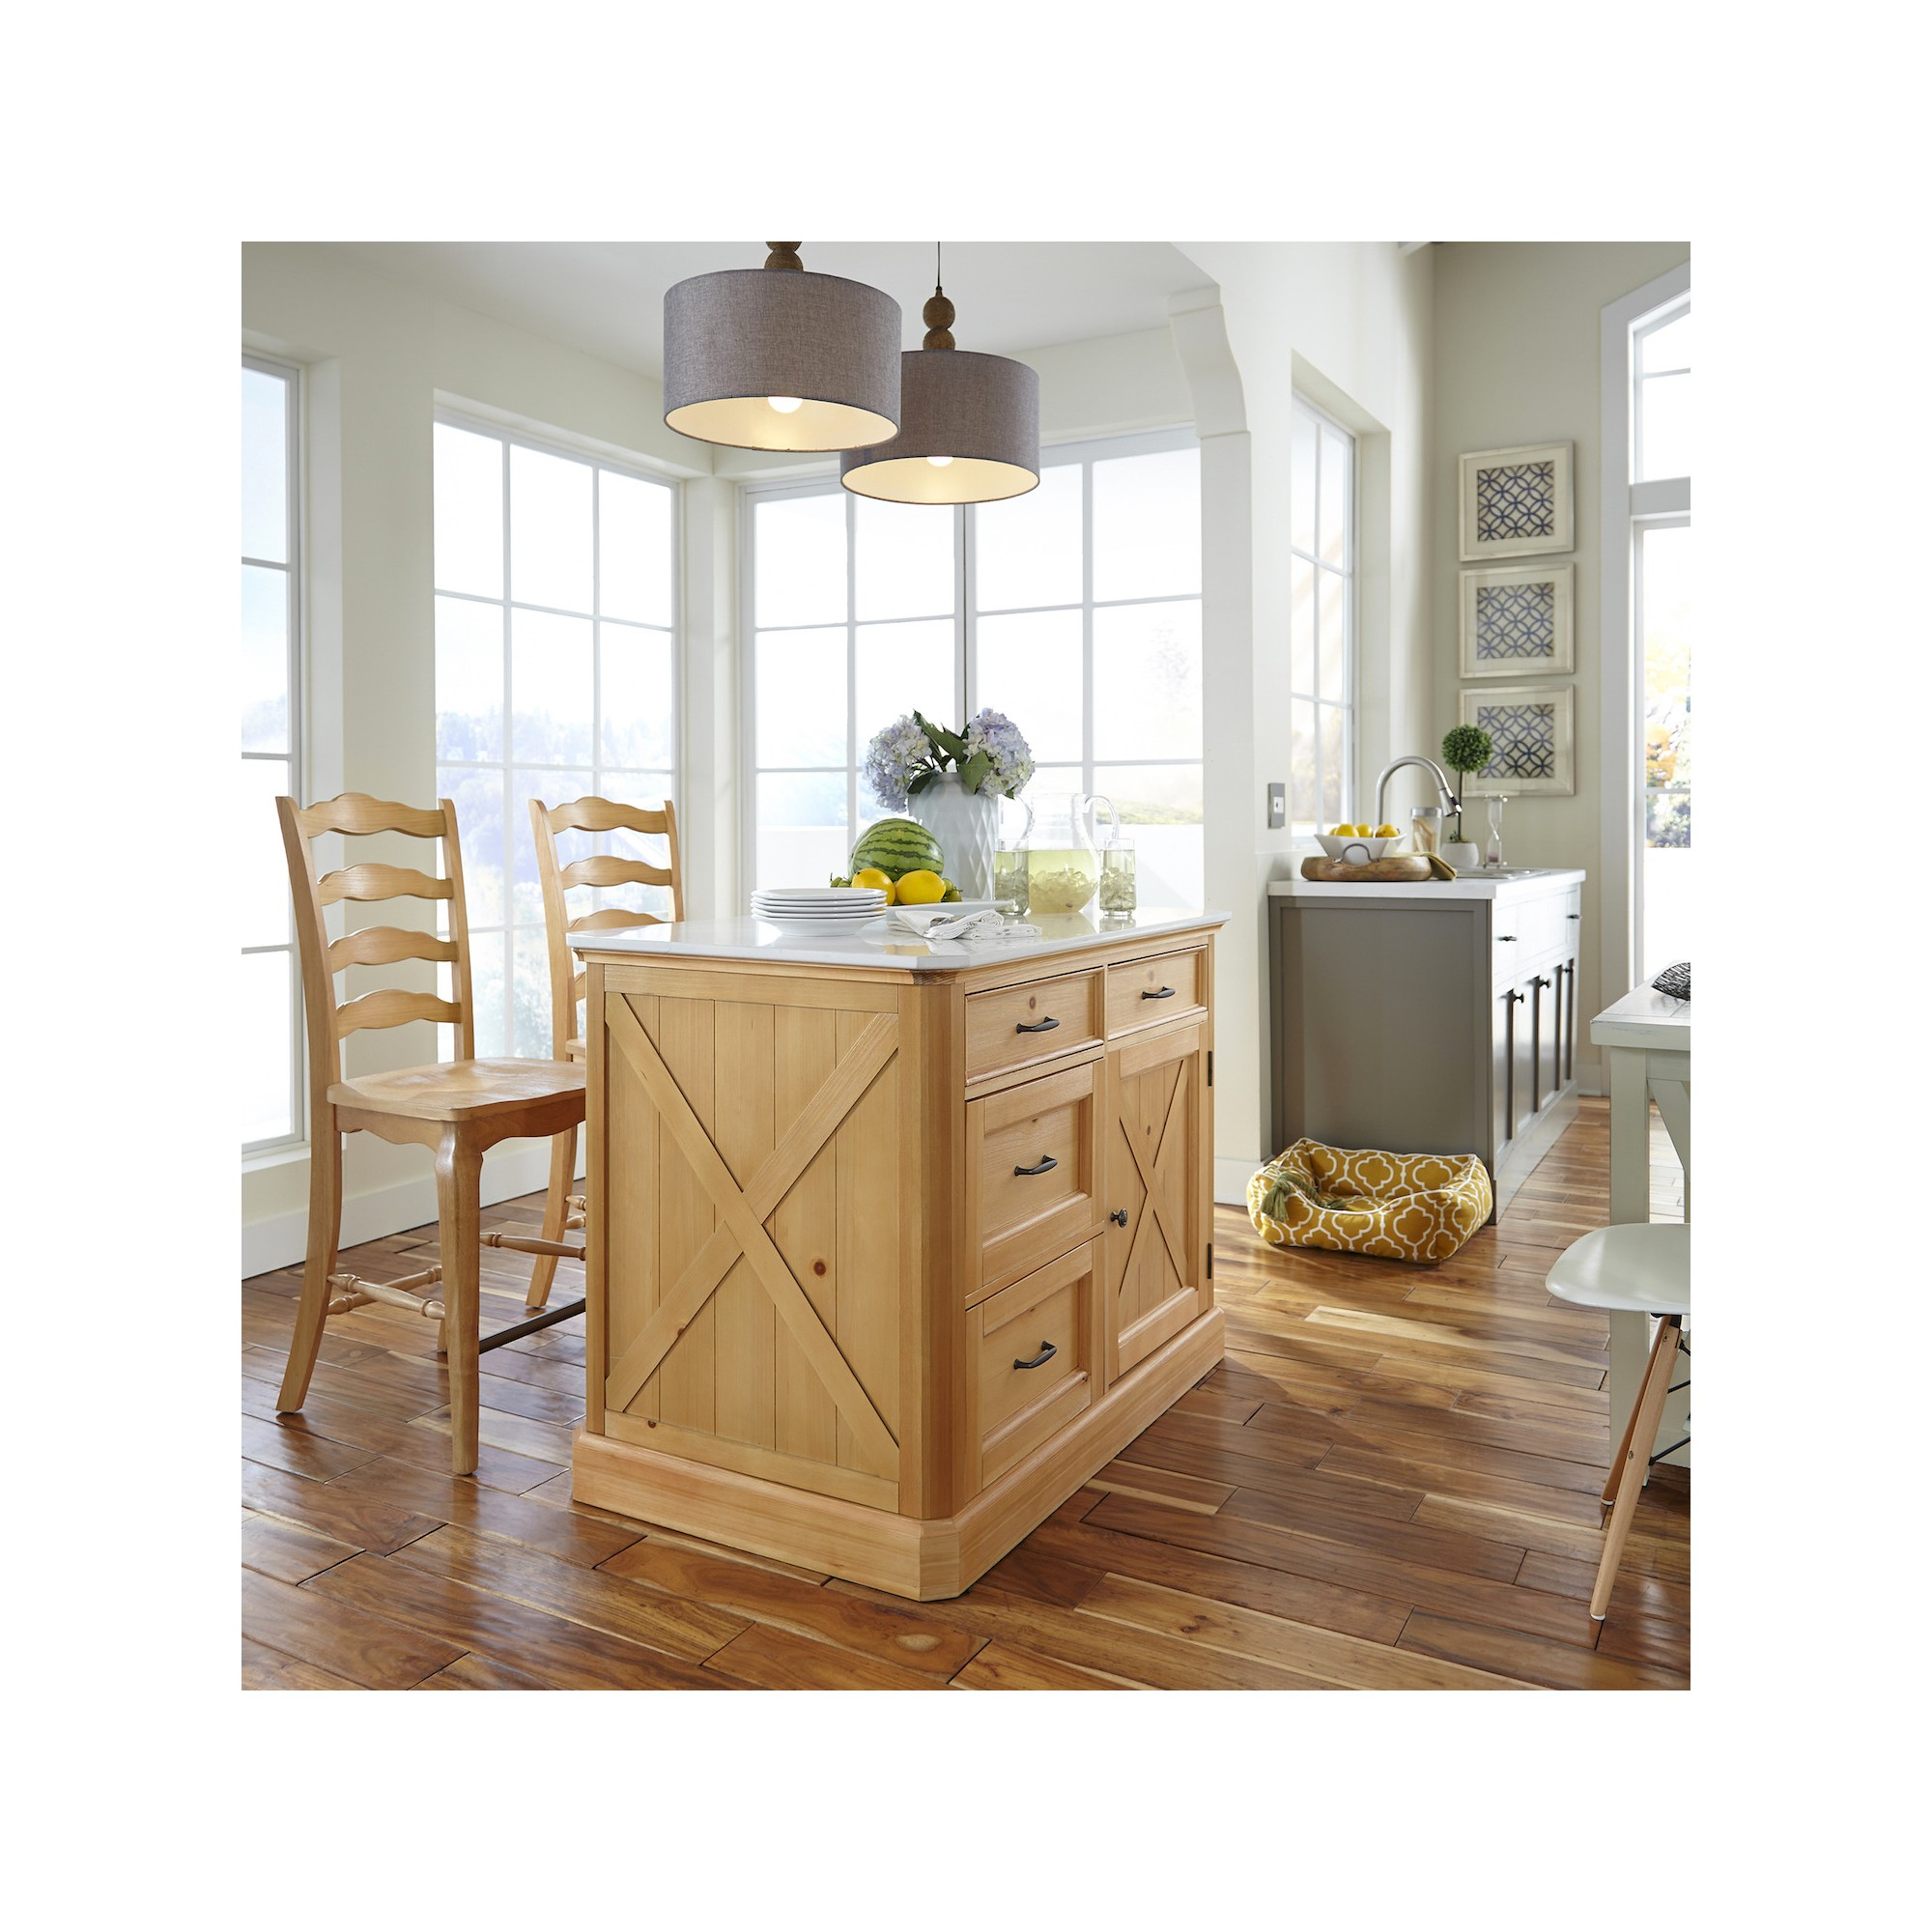 islands kitchen cabinets remodeling utility net island l small with stools